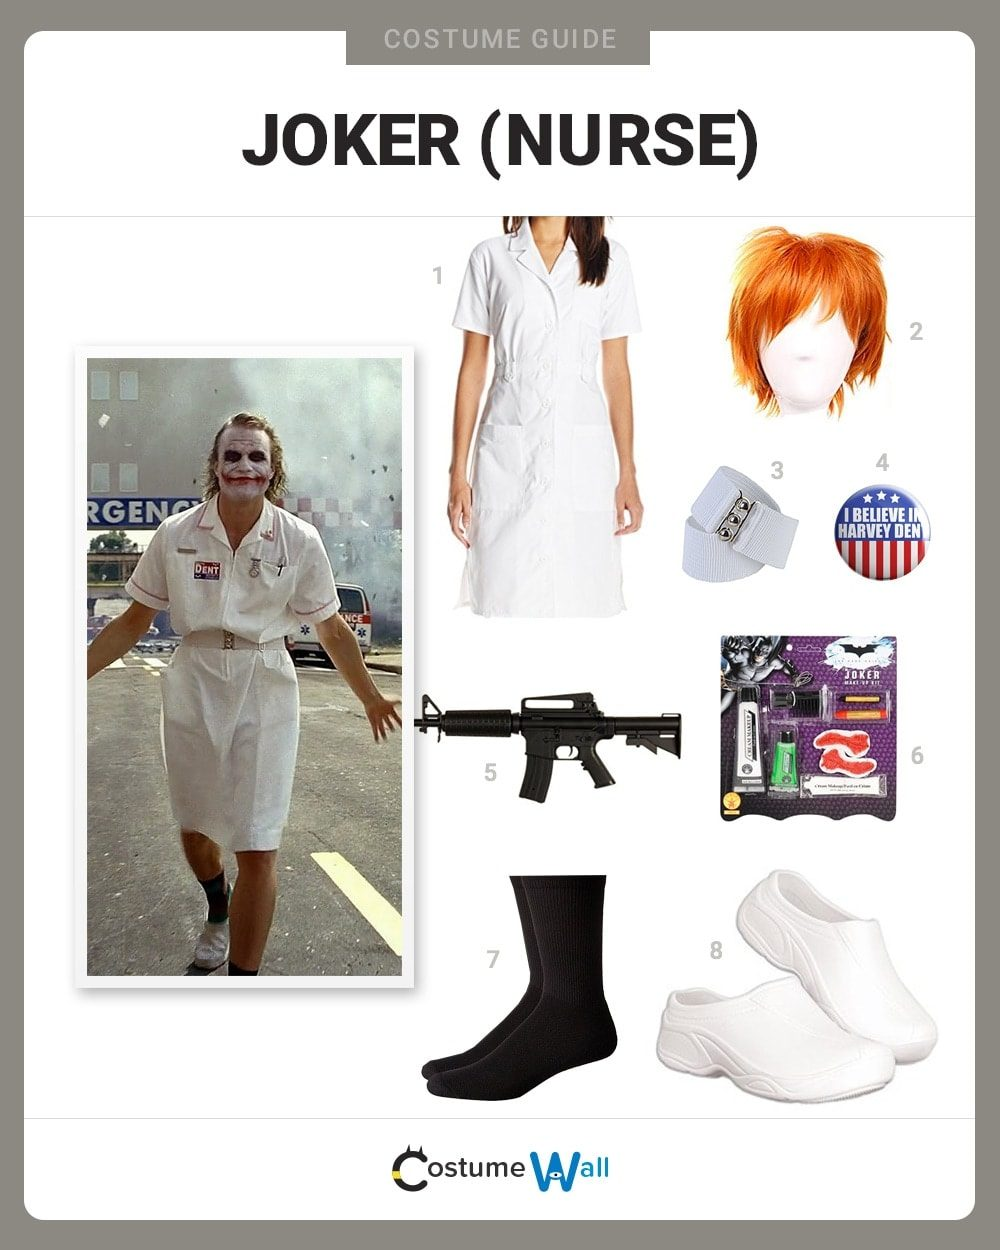 Nurse Joker Costume Guide